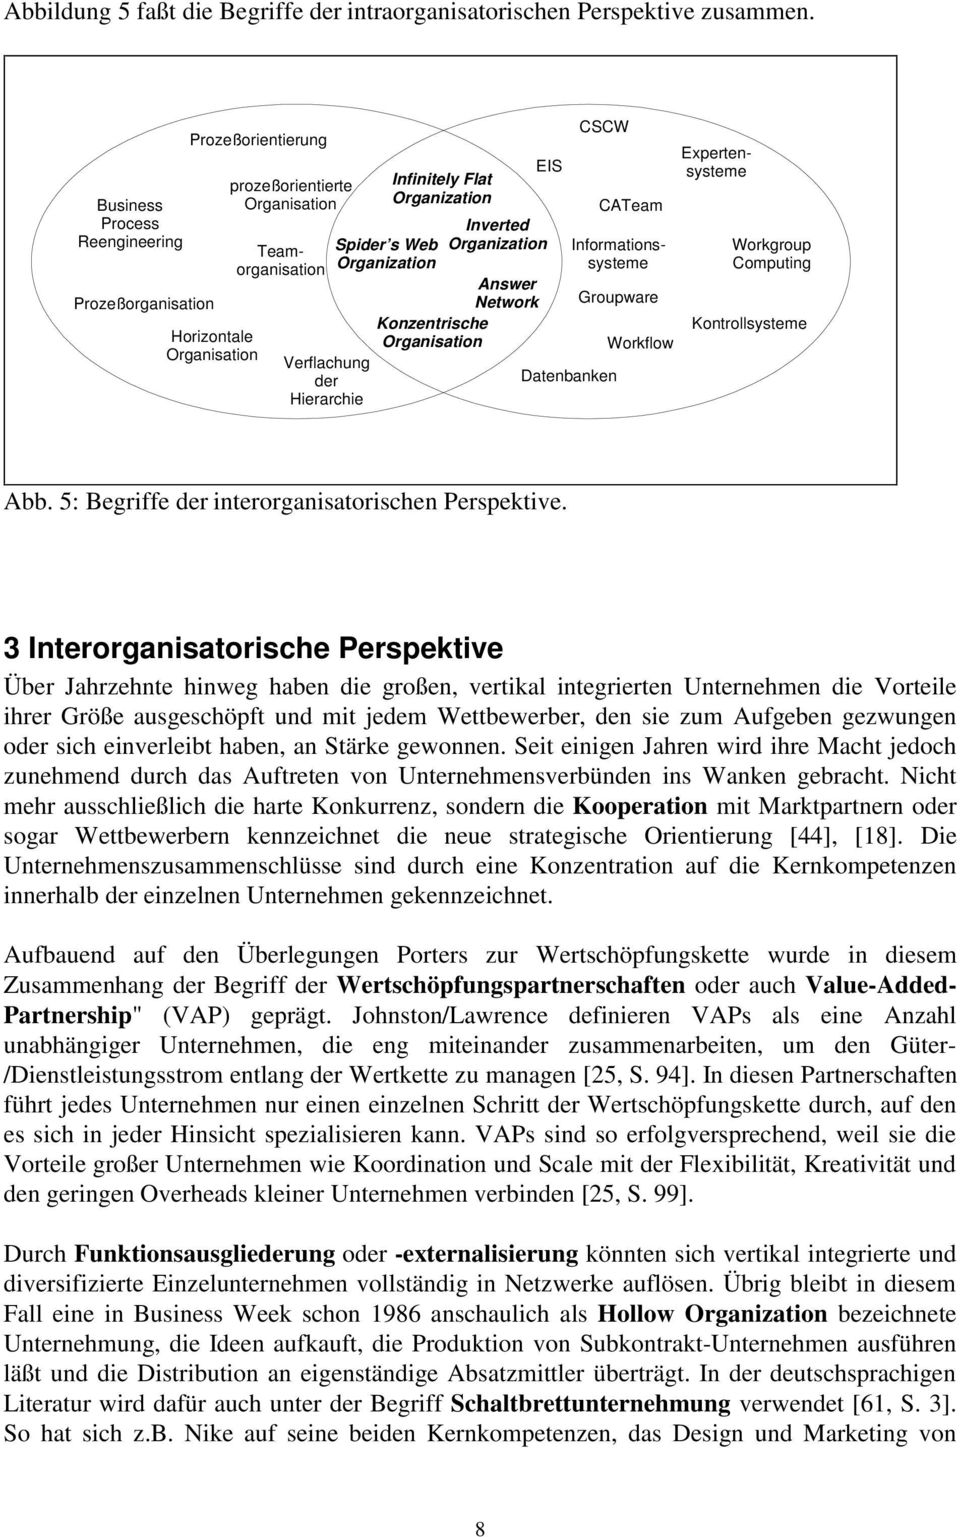 Spider s Web Organization Organization Answer Network Konzentrische Organisation CSCW Datenbanken CATeam Expertensysteme Informationssysteme Groupware Workflow Teamorganisation Workgroup Computing